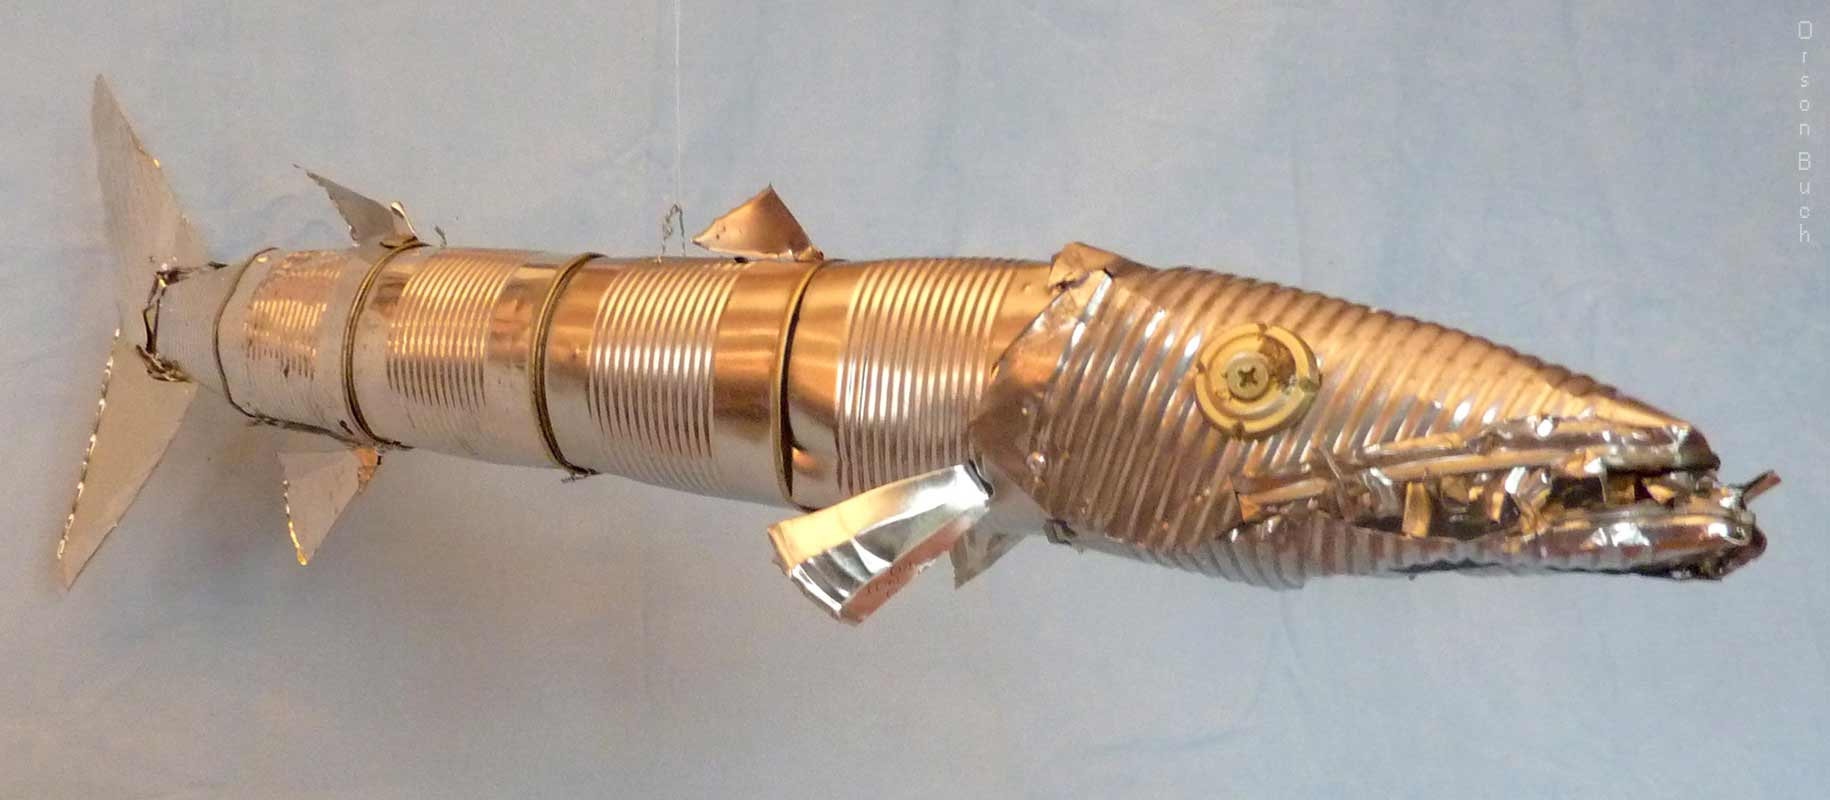 Silver barracuda Orson Buch's tin can sculpture